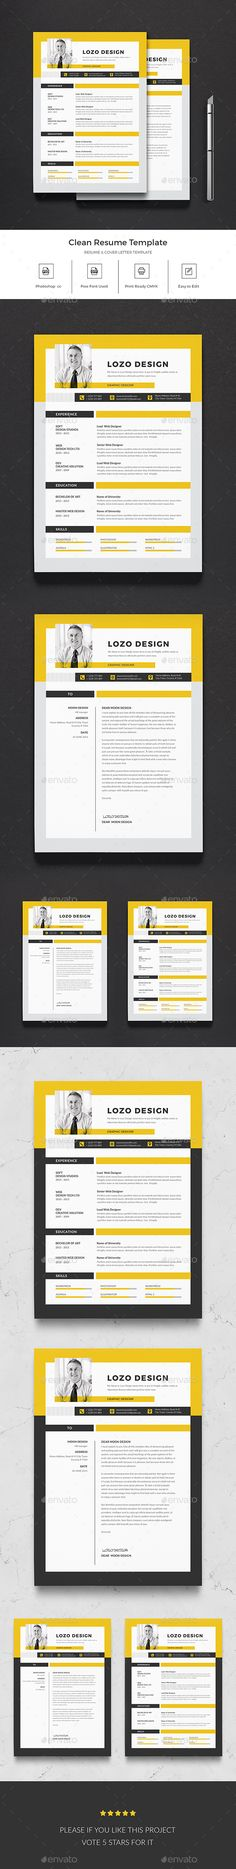 #Resume - #Resumes Stationery Download here: https://graphicriver.net/item/resume/20241782?ref=alena994